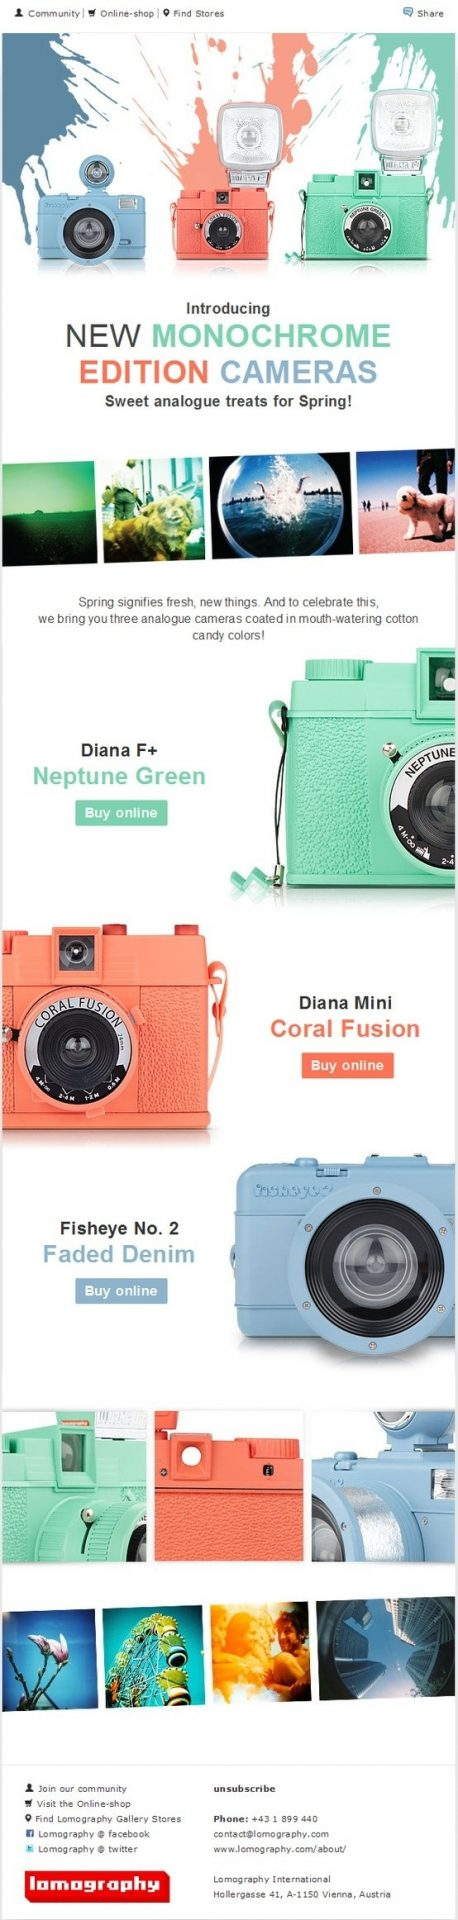 22 Excellent eCommerce Email Templates Examples to Inspire Your Next